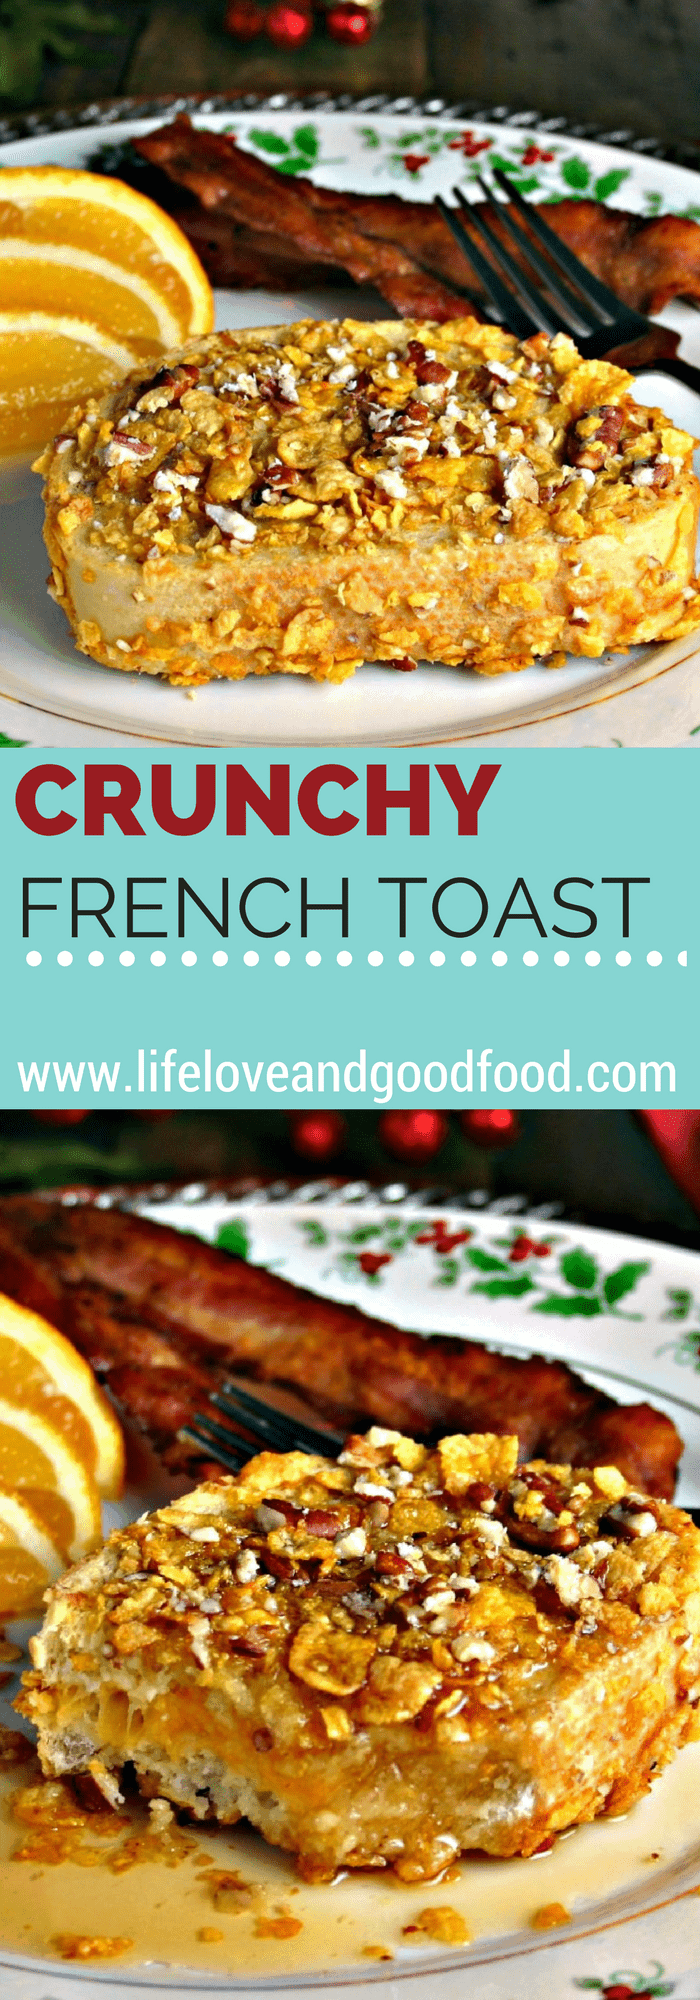 Crunchy French Toast | Life, Love, and Good Food